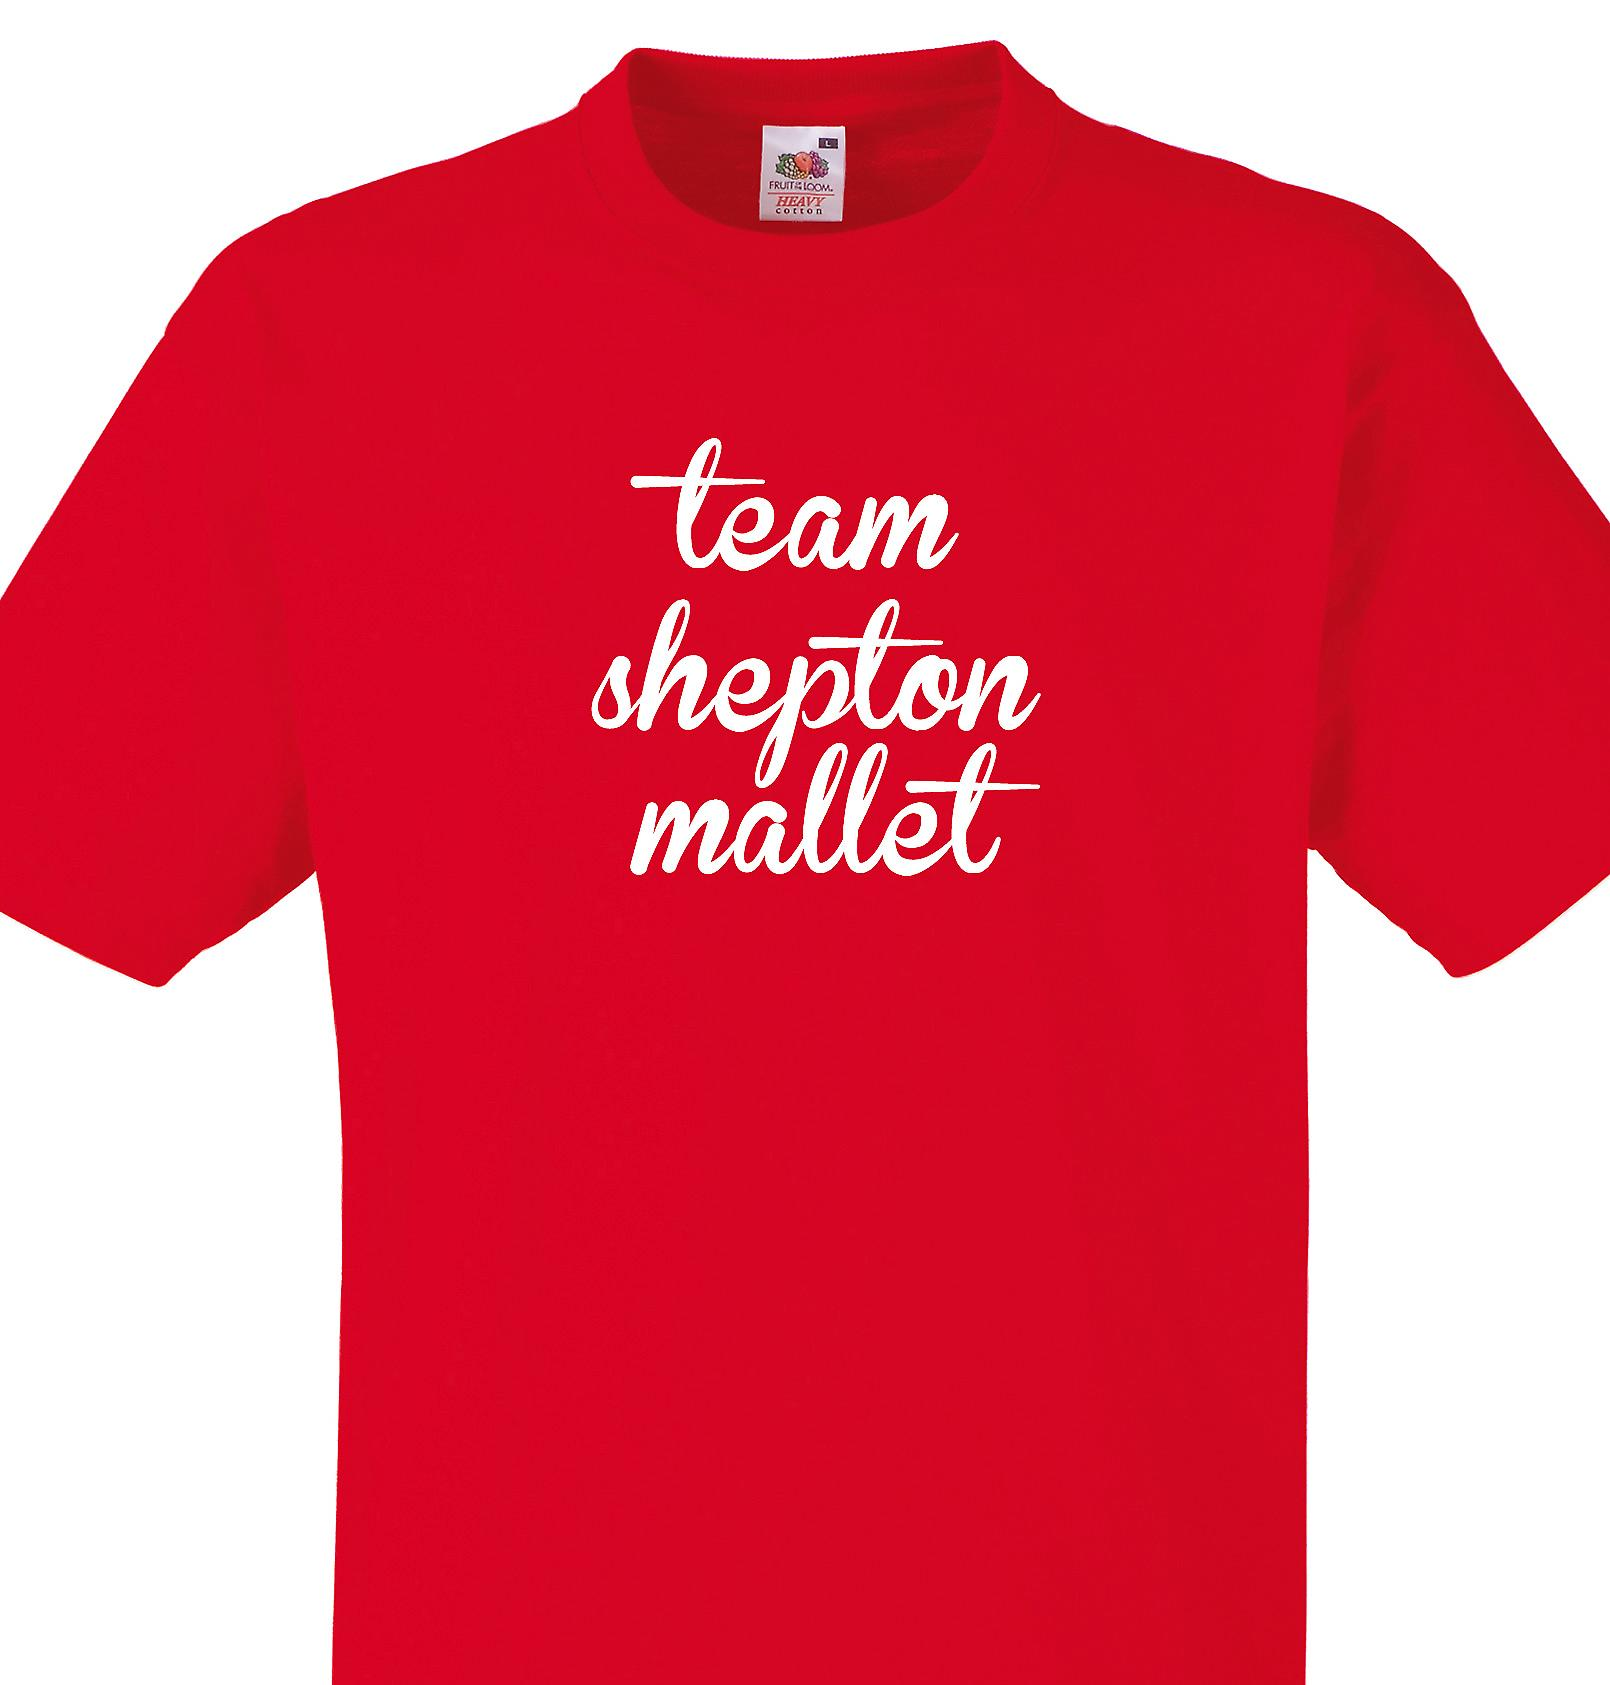 Team Shepton mallet Red T shirt